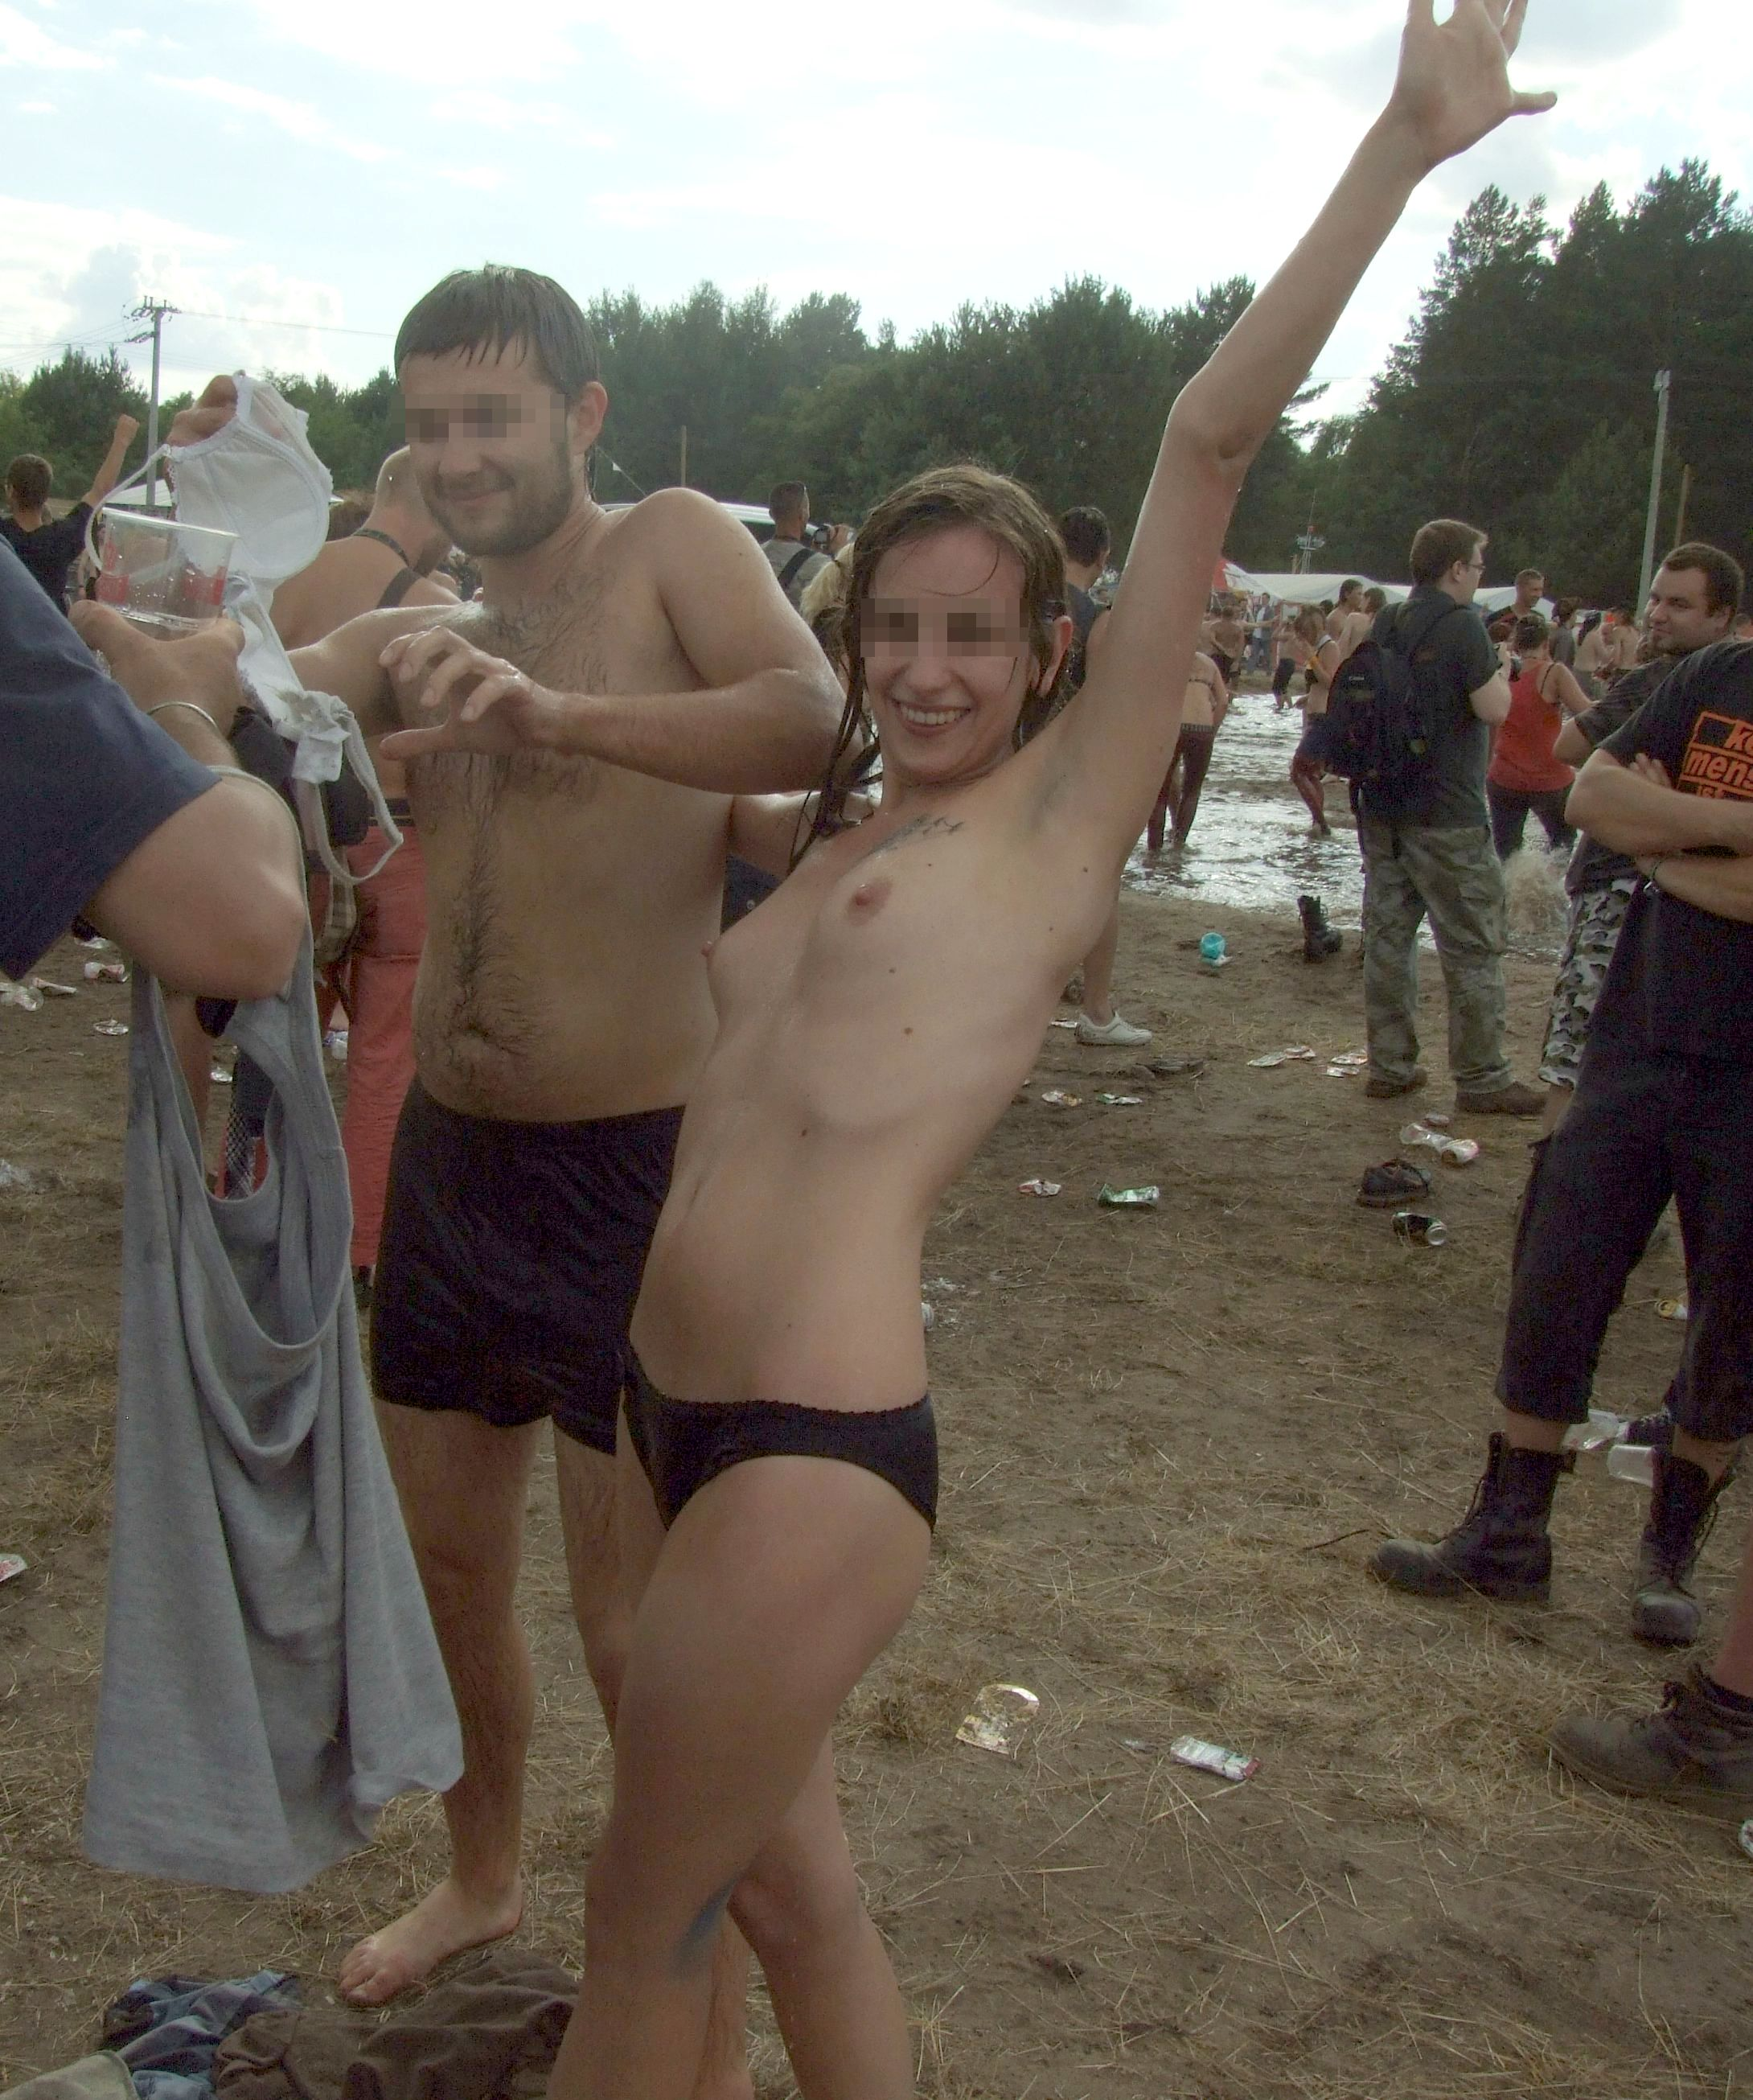 women nude at woodstock